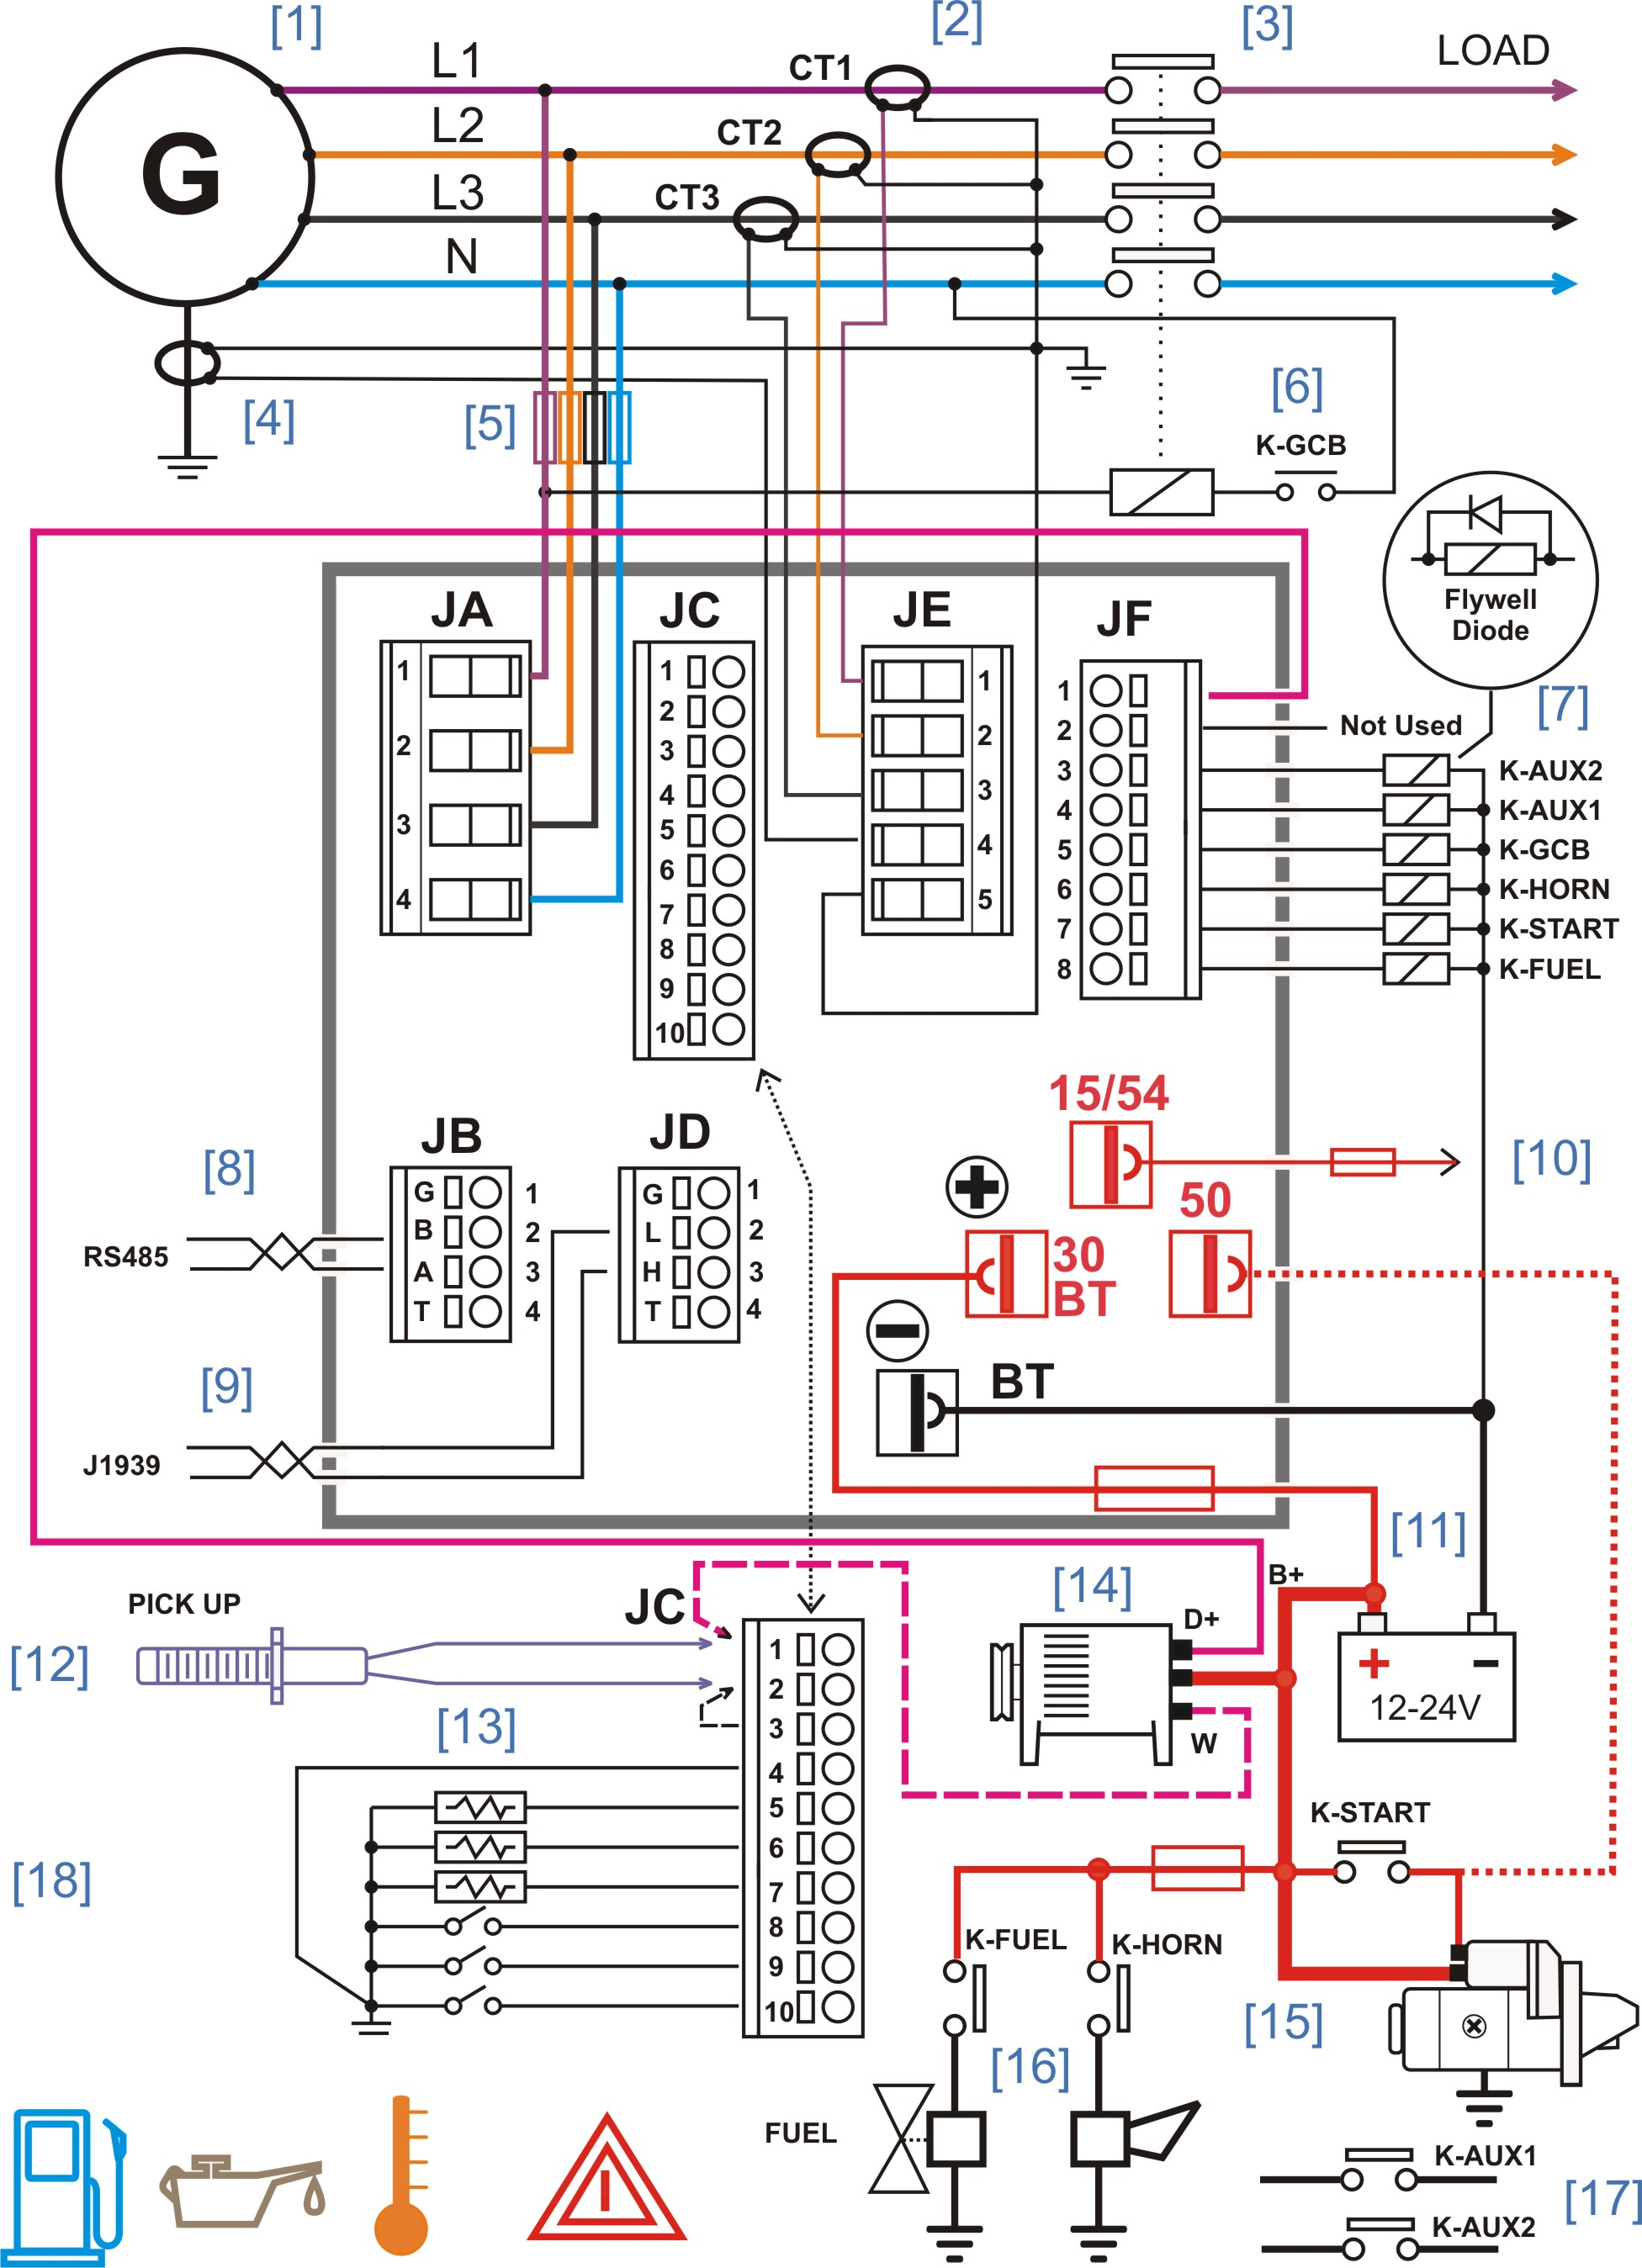 hight resolution of generator controller wiring diagram generator controllers generator controller wiring diagram